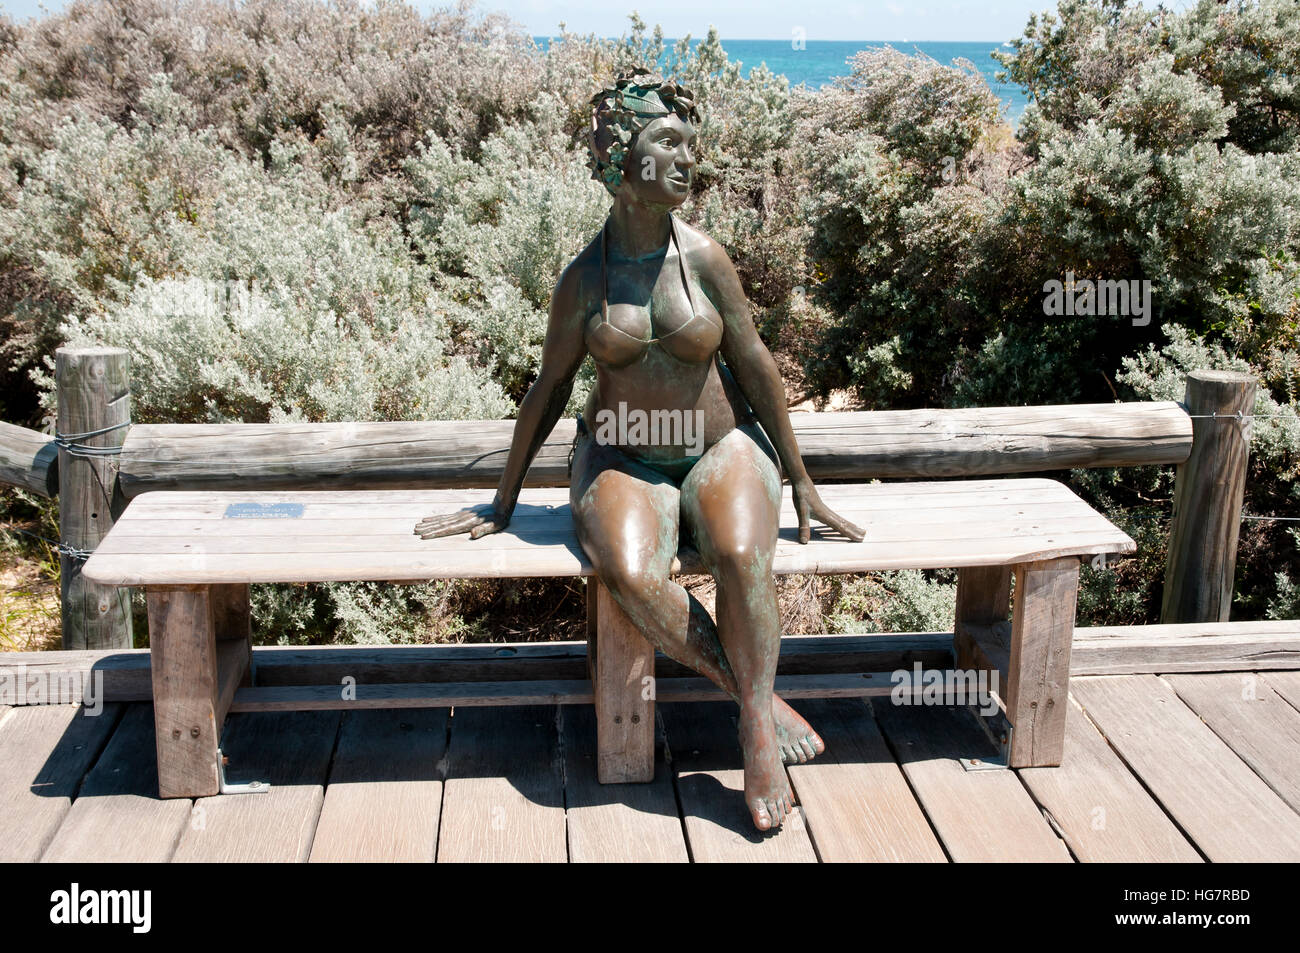 Mermaid Woman Statue - Fremantle - Australia - Stock Image